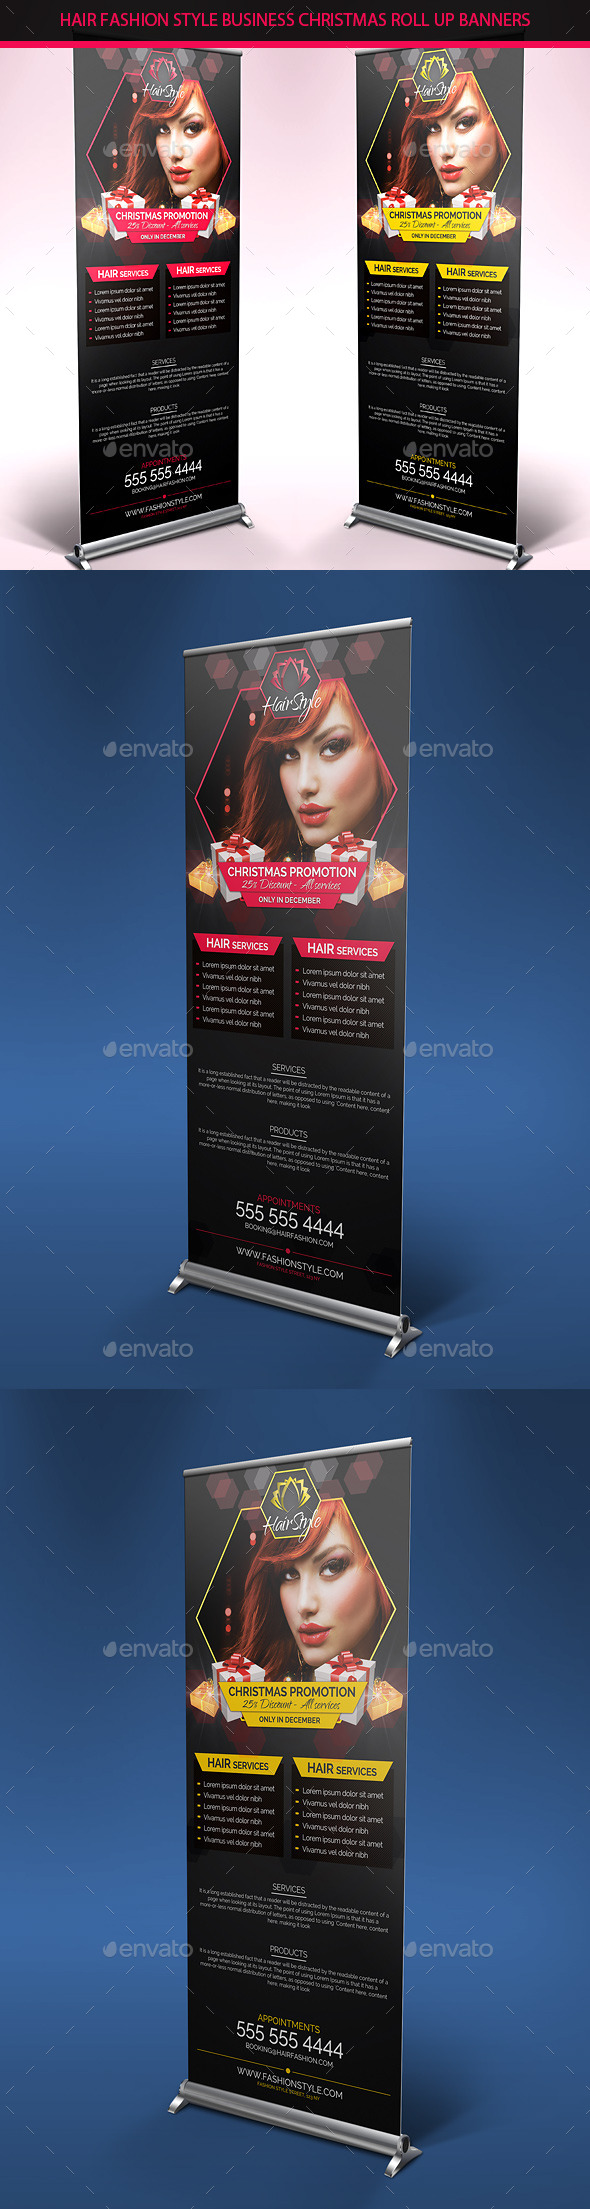 Hair Salon Christmas Promotions Roll Up Banners - Signage Print Templates